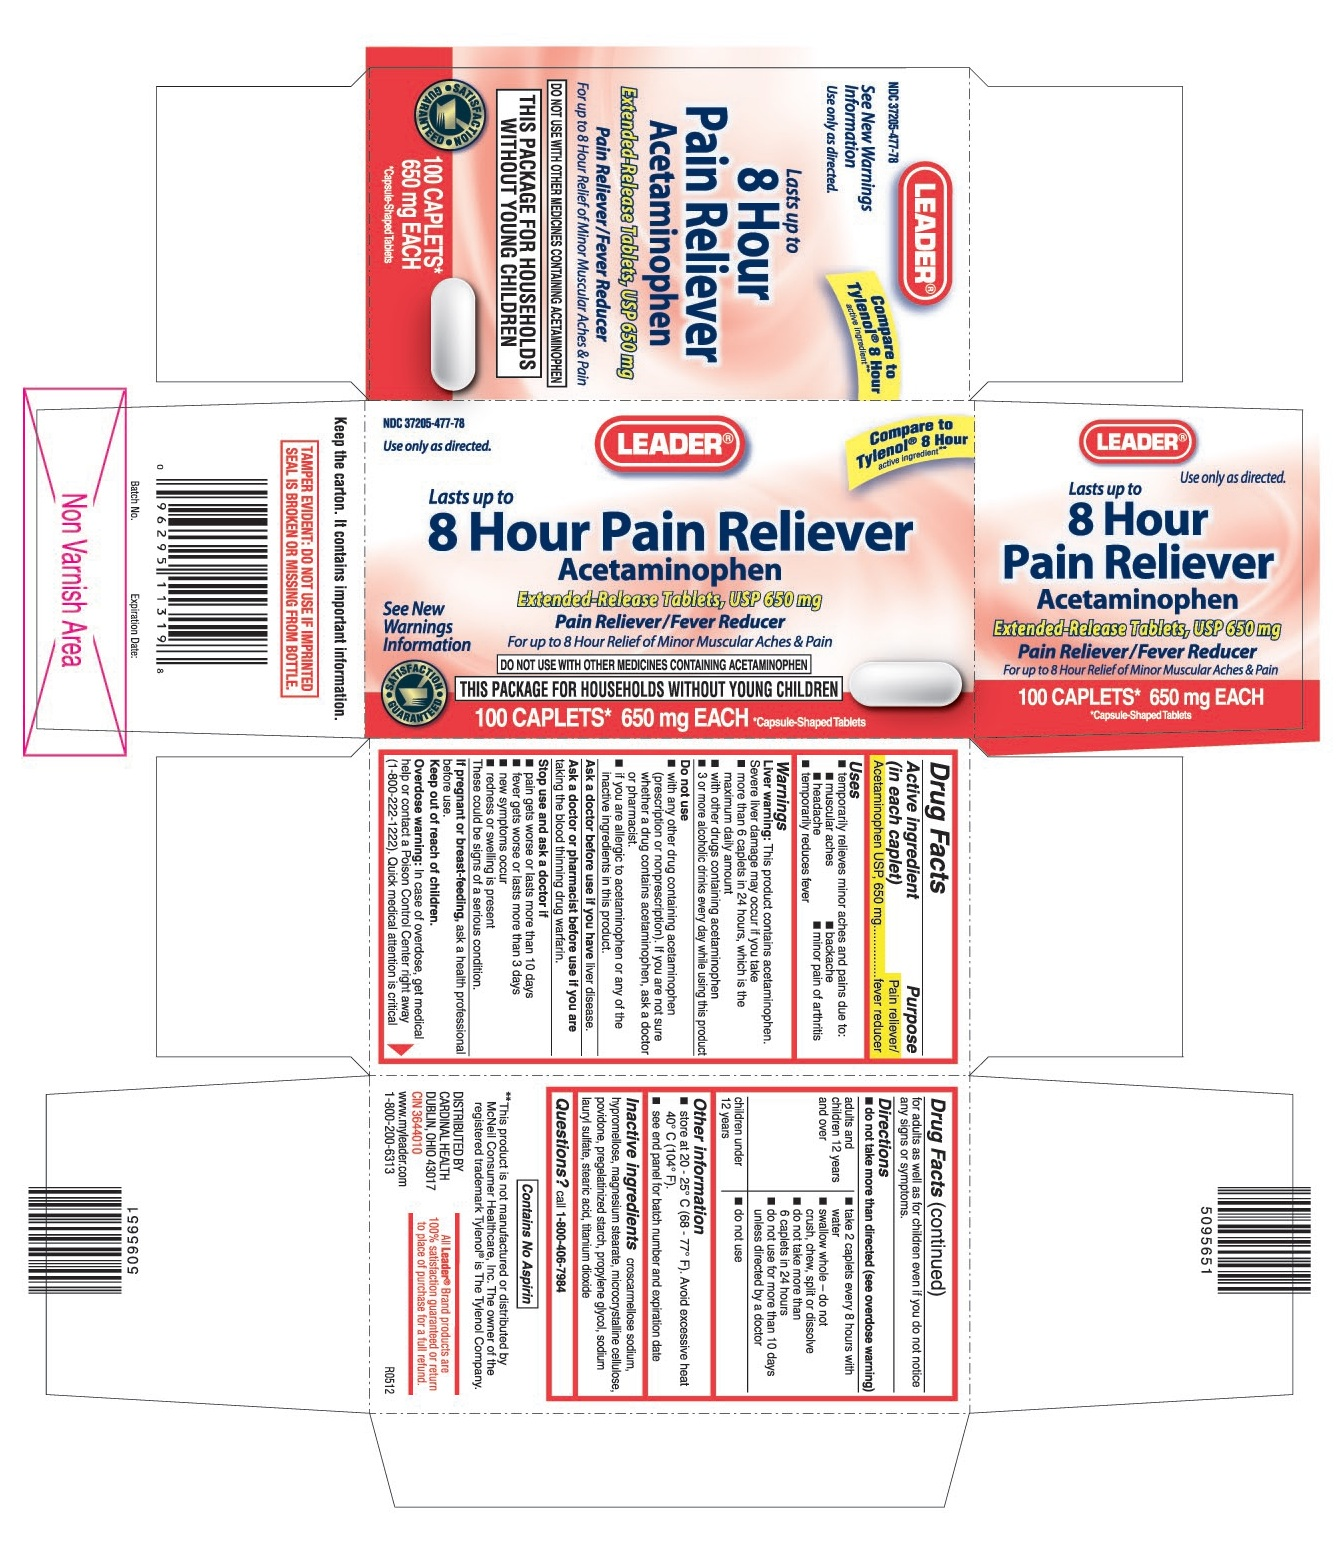 This is the 100 count bottle carton label for Leader Acetaminophen (8 hour) extended-release tablets, USP 650 mg.